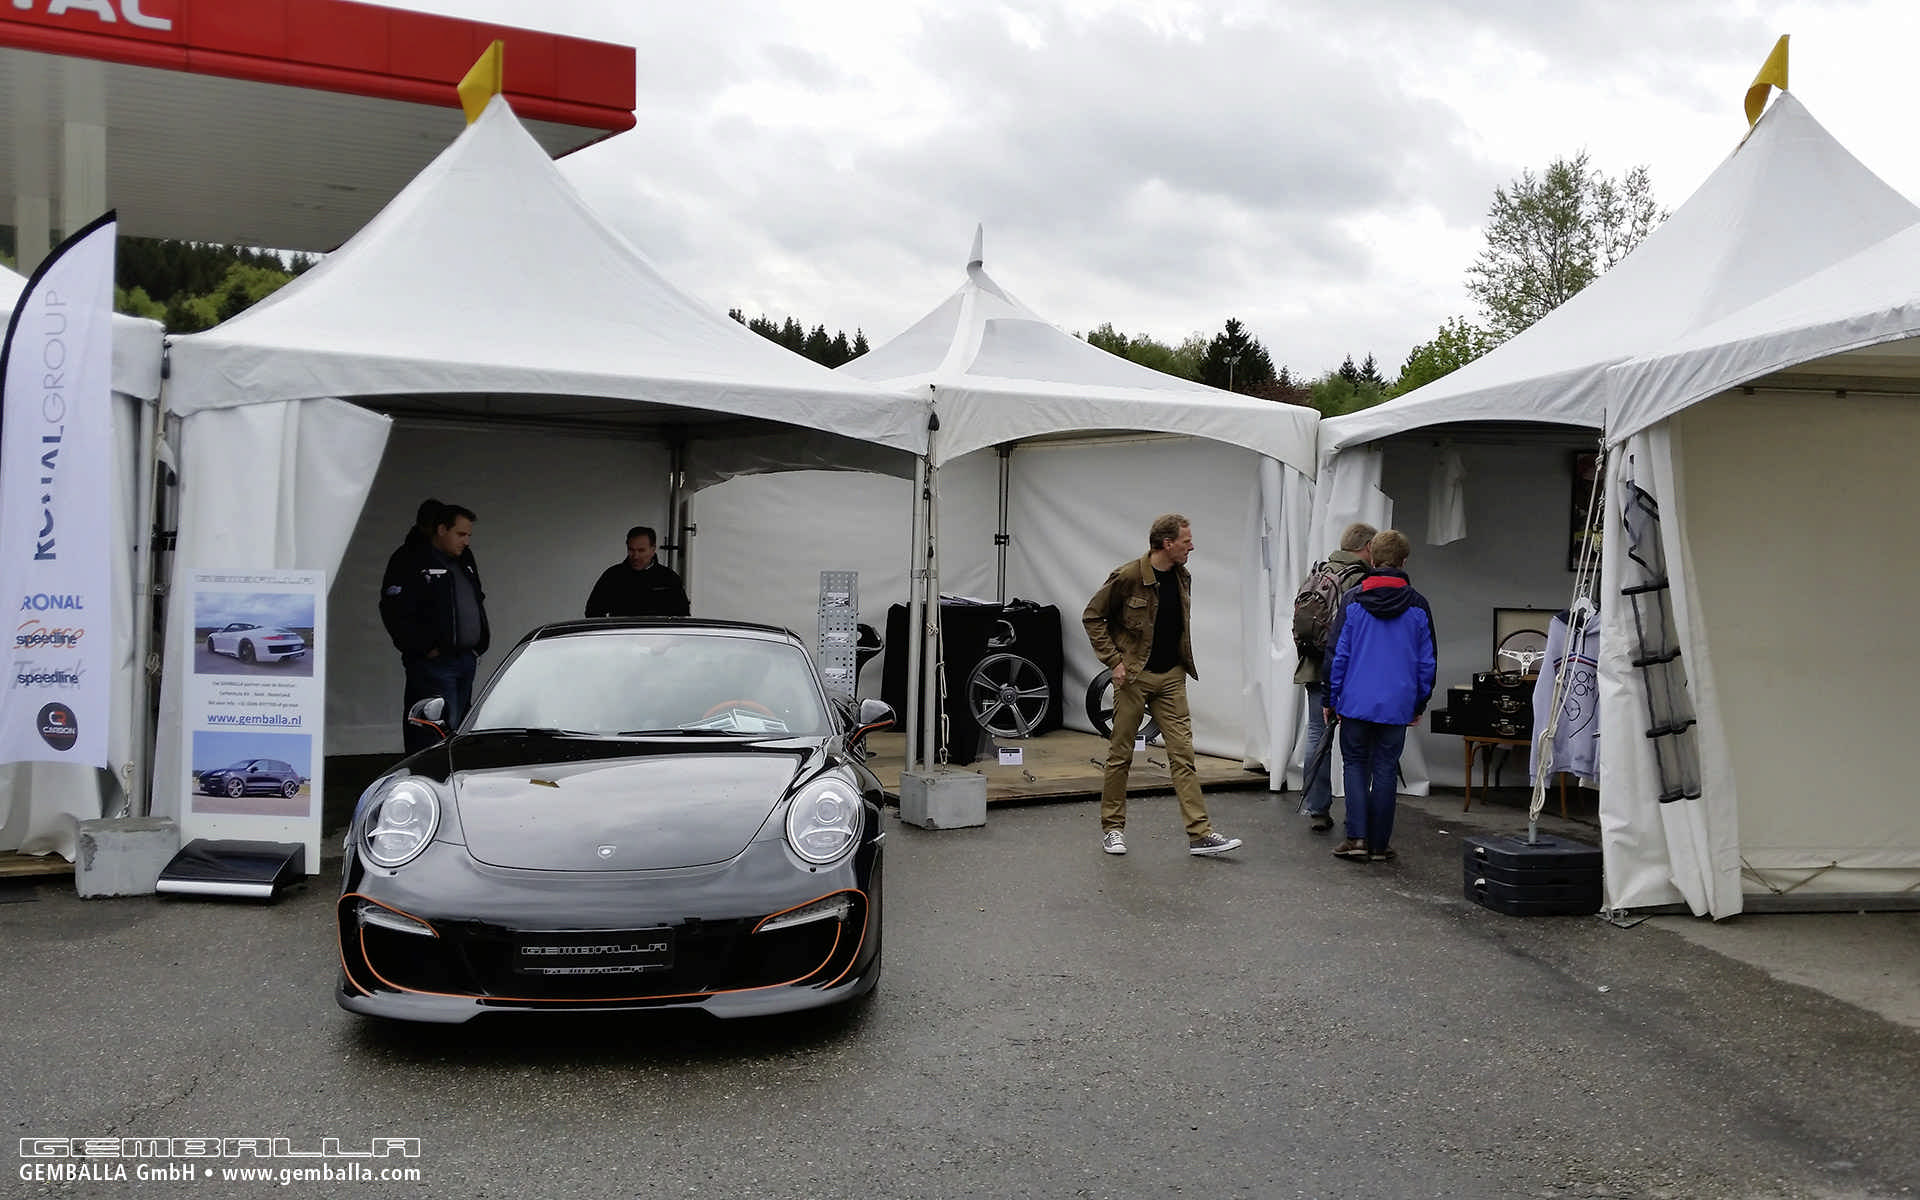 gemballa_gmbh_events_spa_francorchamps_2014_3